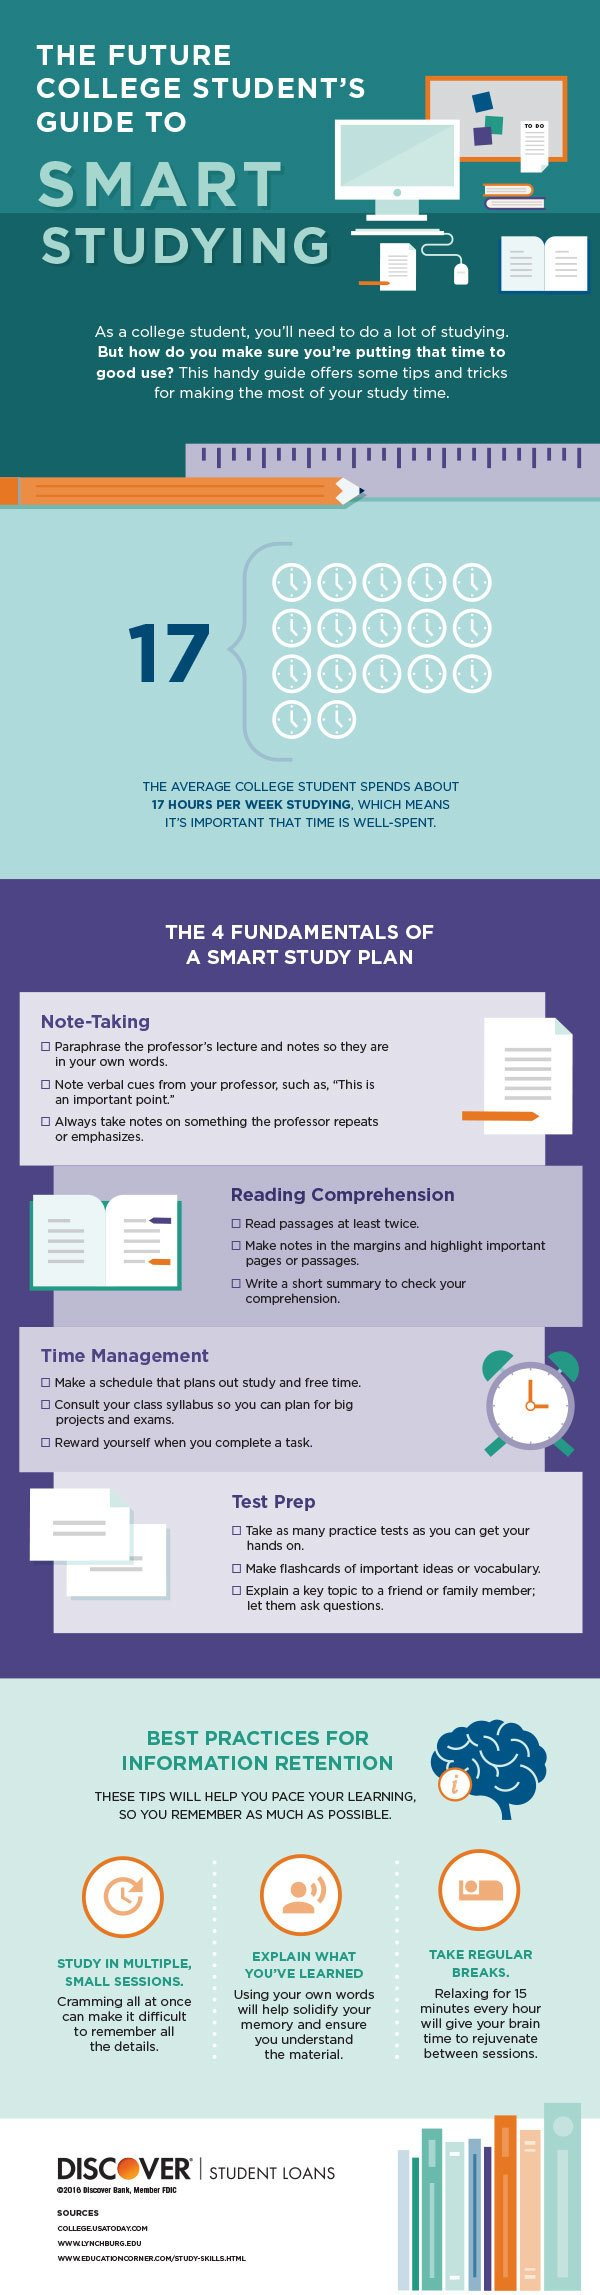 Smart Studying Guide for College Infographic